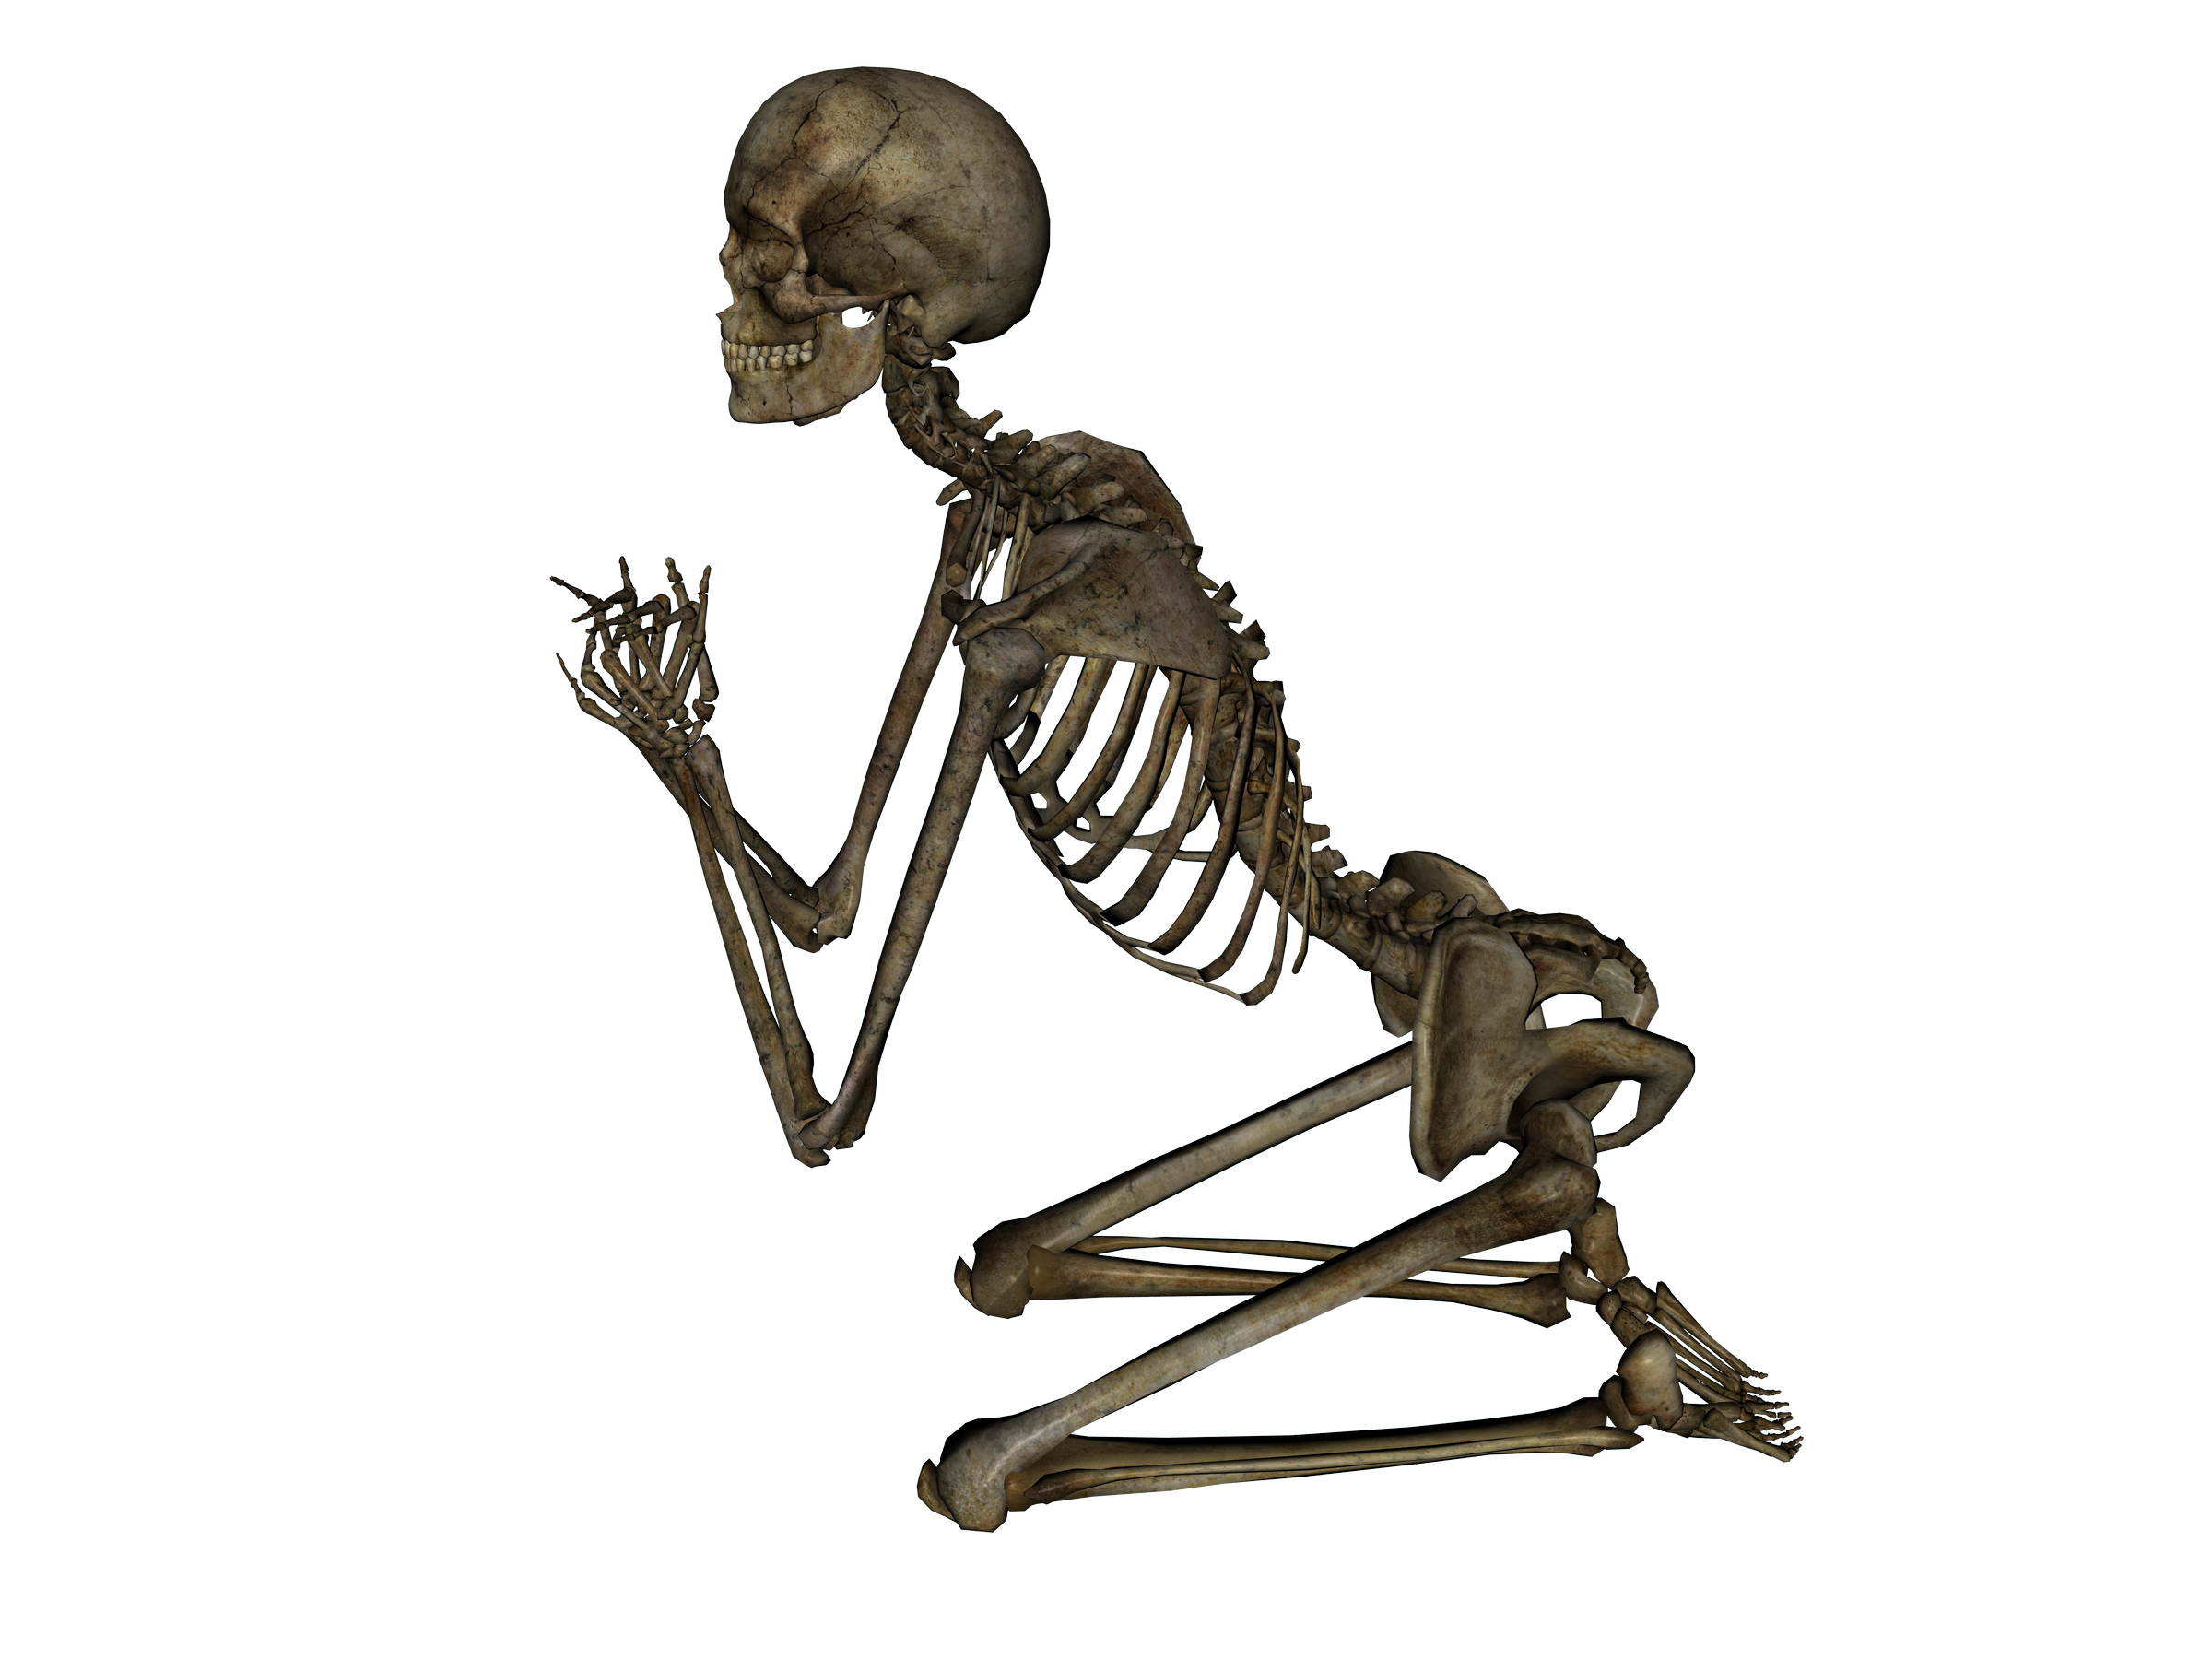 Skeleton, skulls PNG images free download.